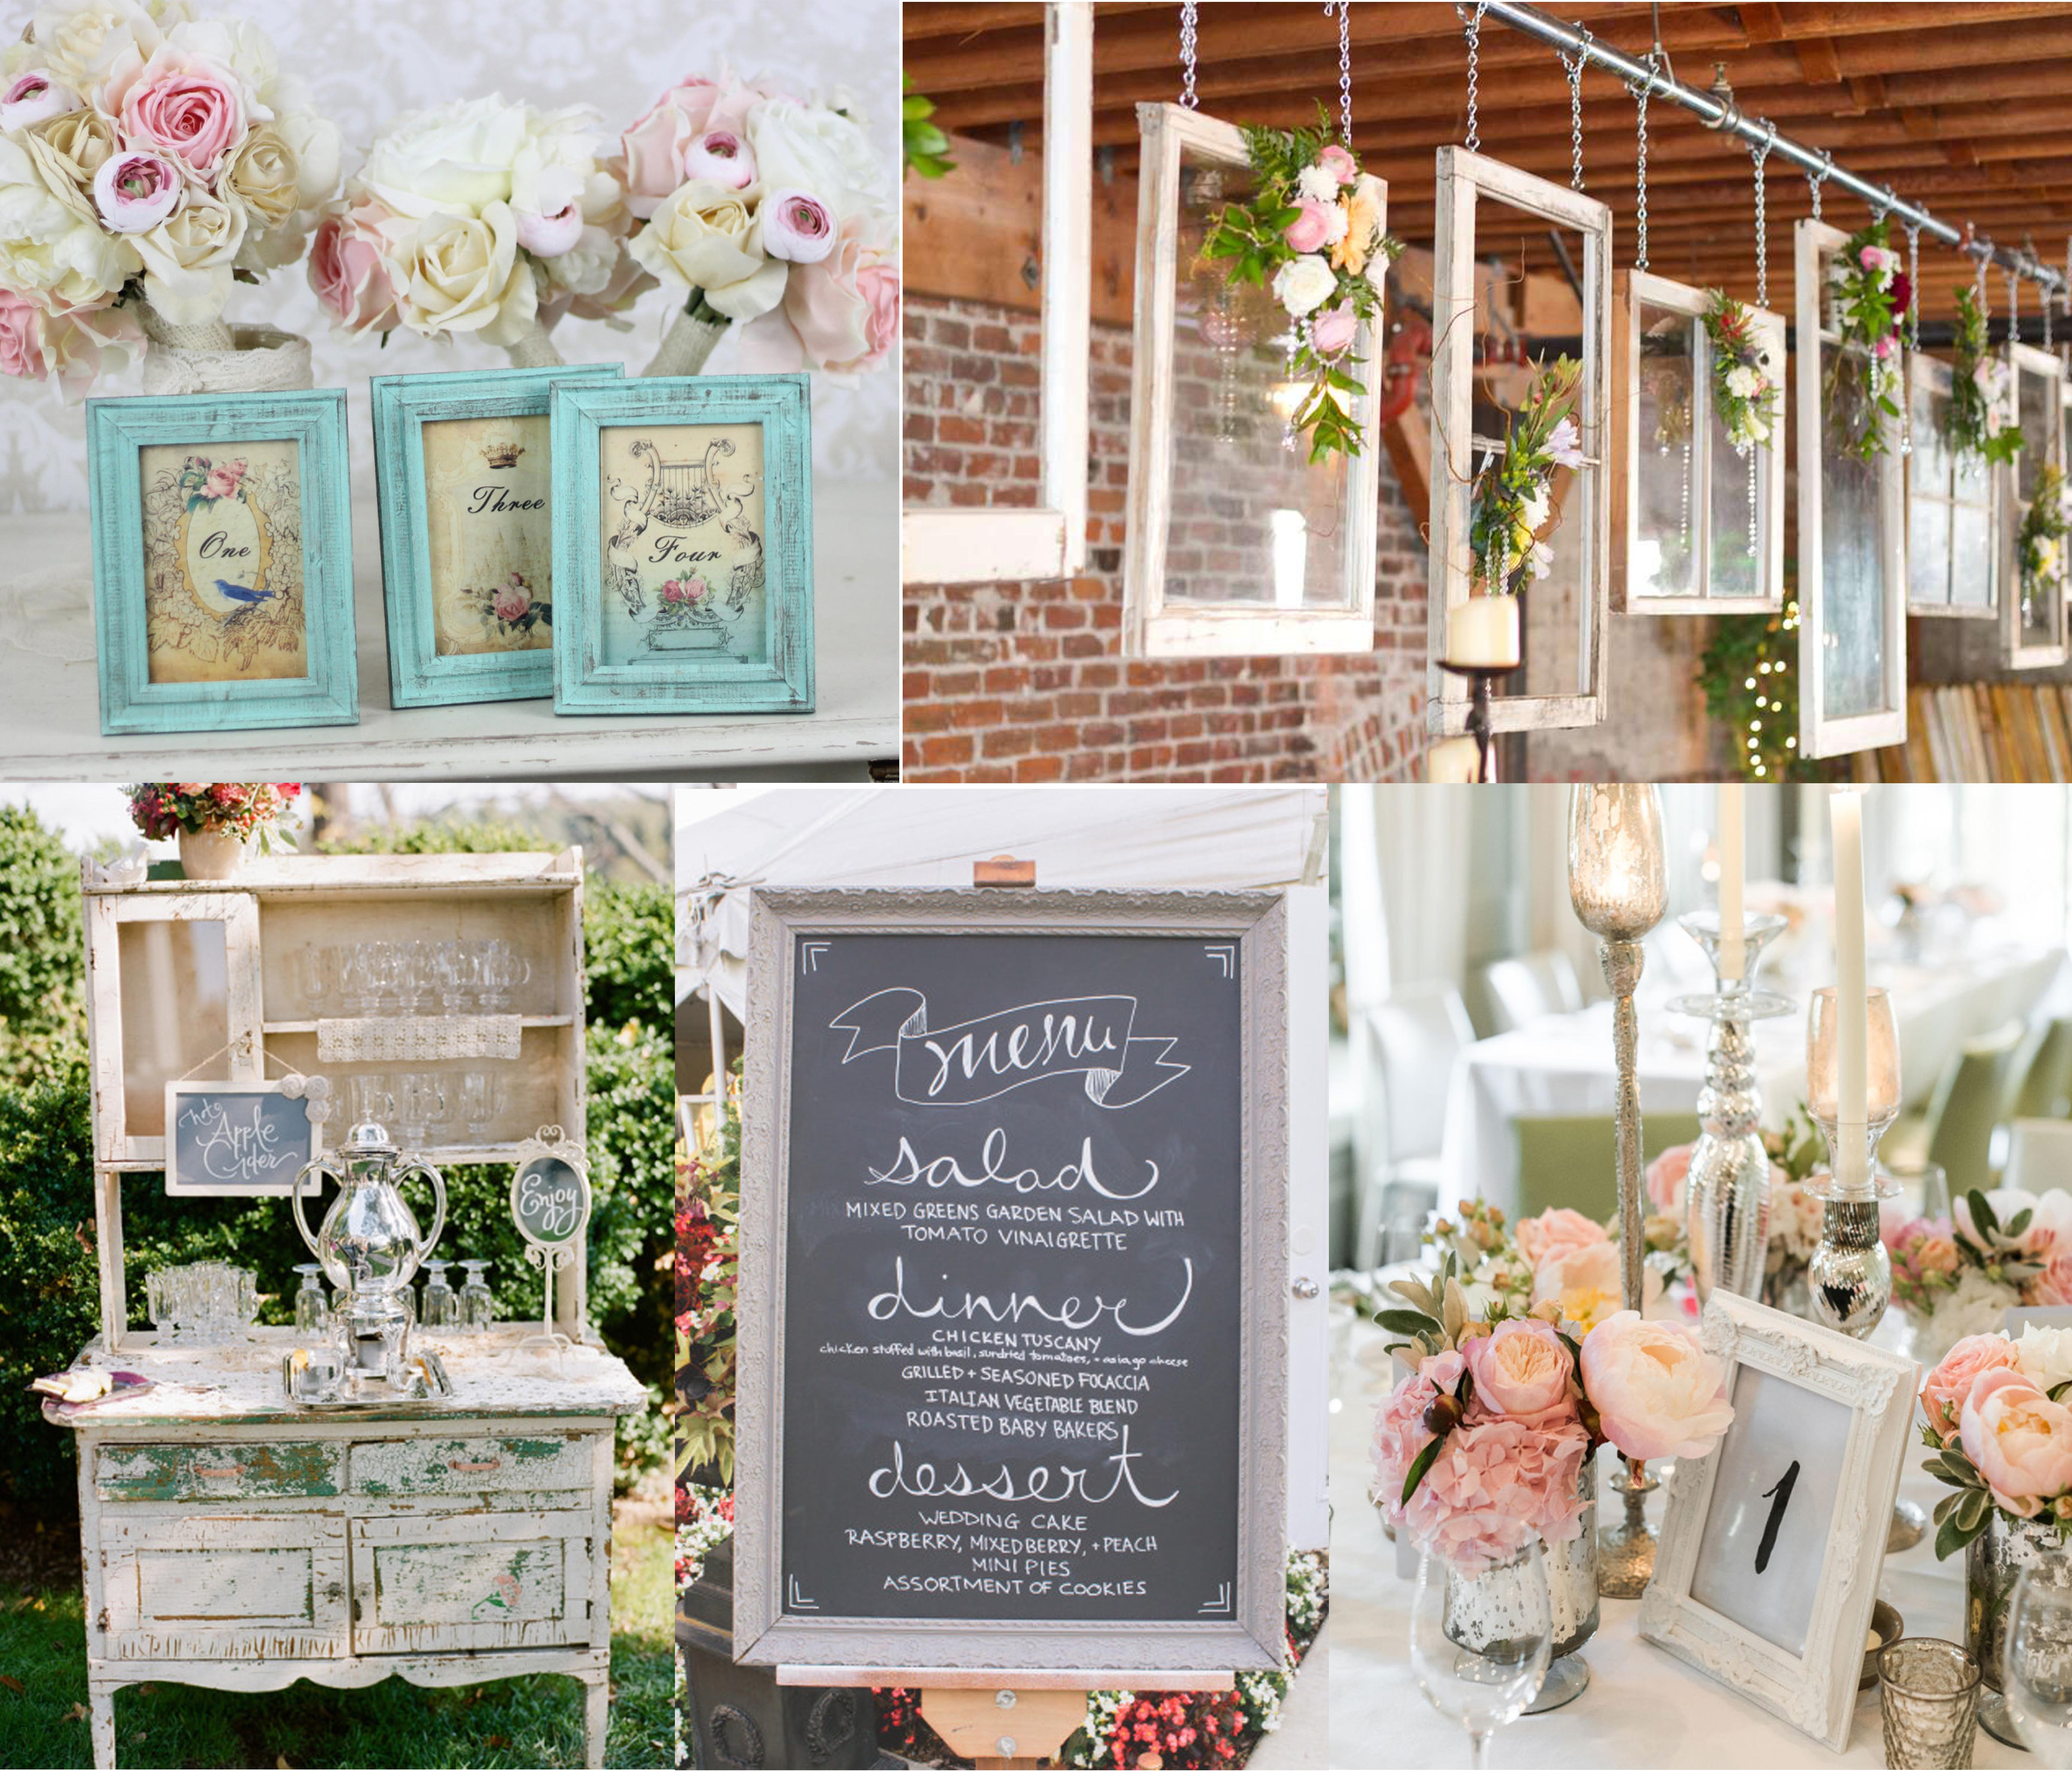 The Shabby Chic Wedding Inspiration and Ideas The Bridal Flower